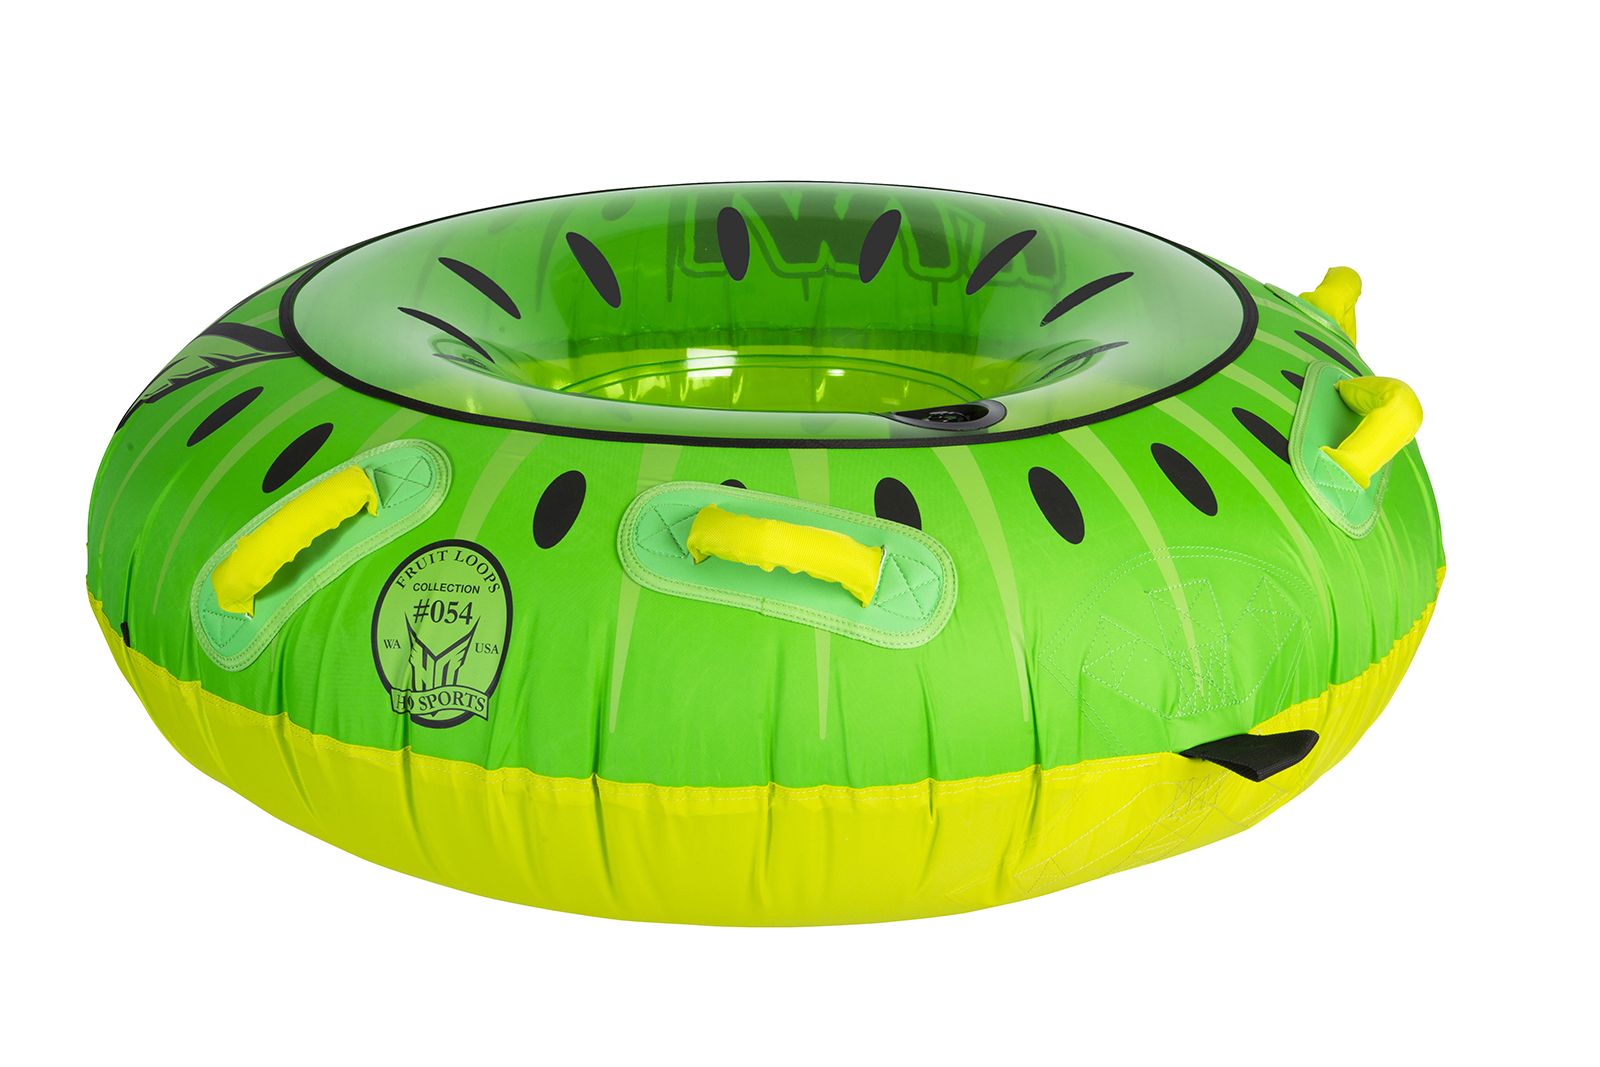 KIWI TOWABLE TUBE HO SPORTS 2018